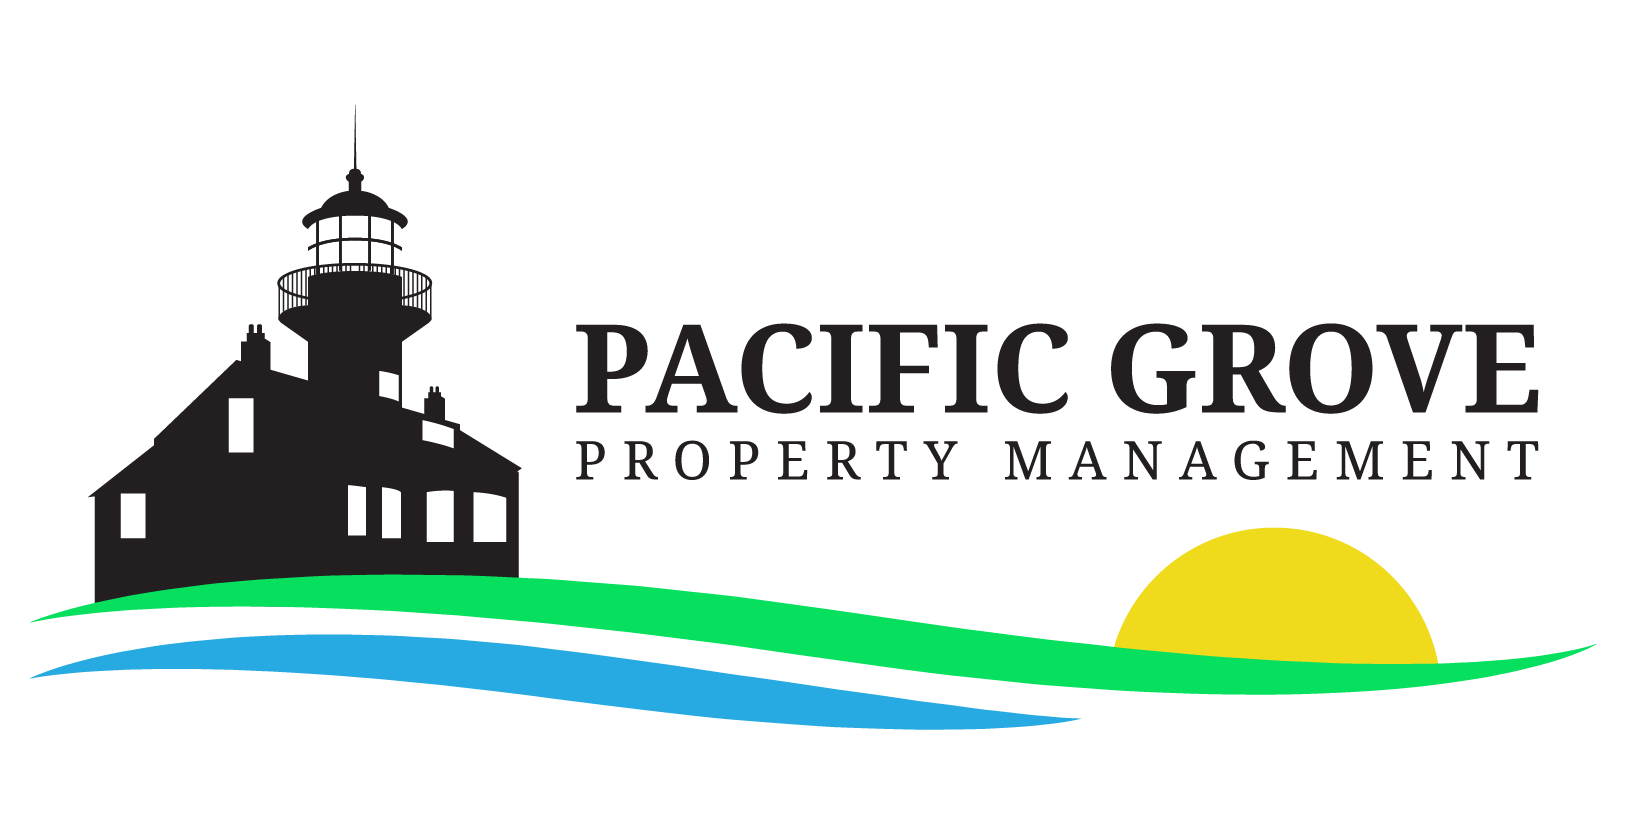 Pacific Grove Property Management